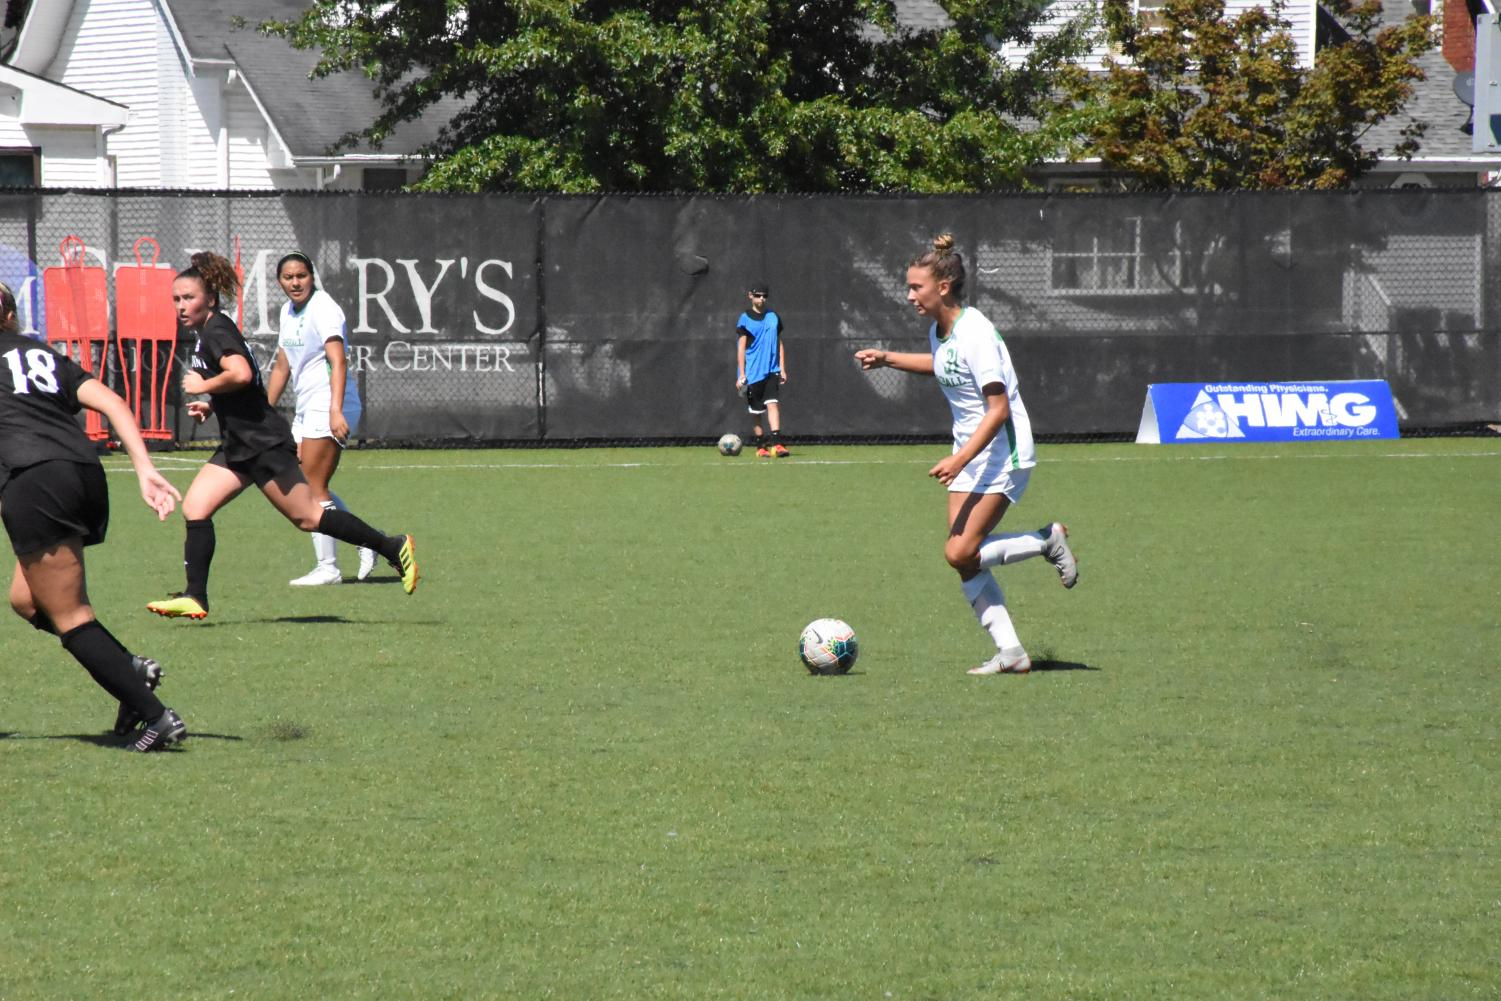 Molly Preston kicks the ball down the field for the Herd in its game against High Point on Sept. 15.